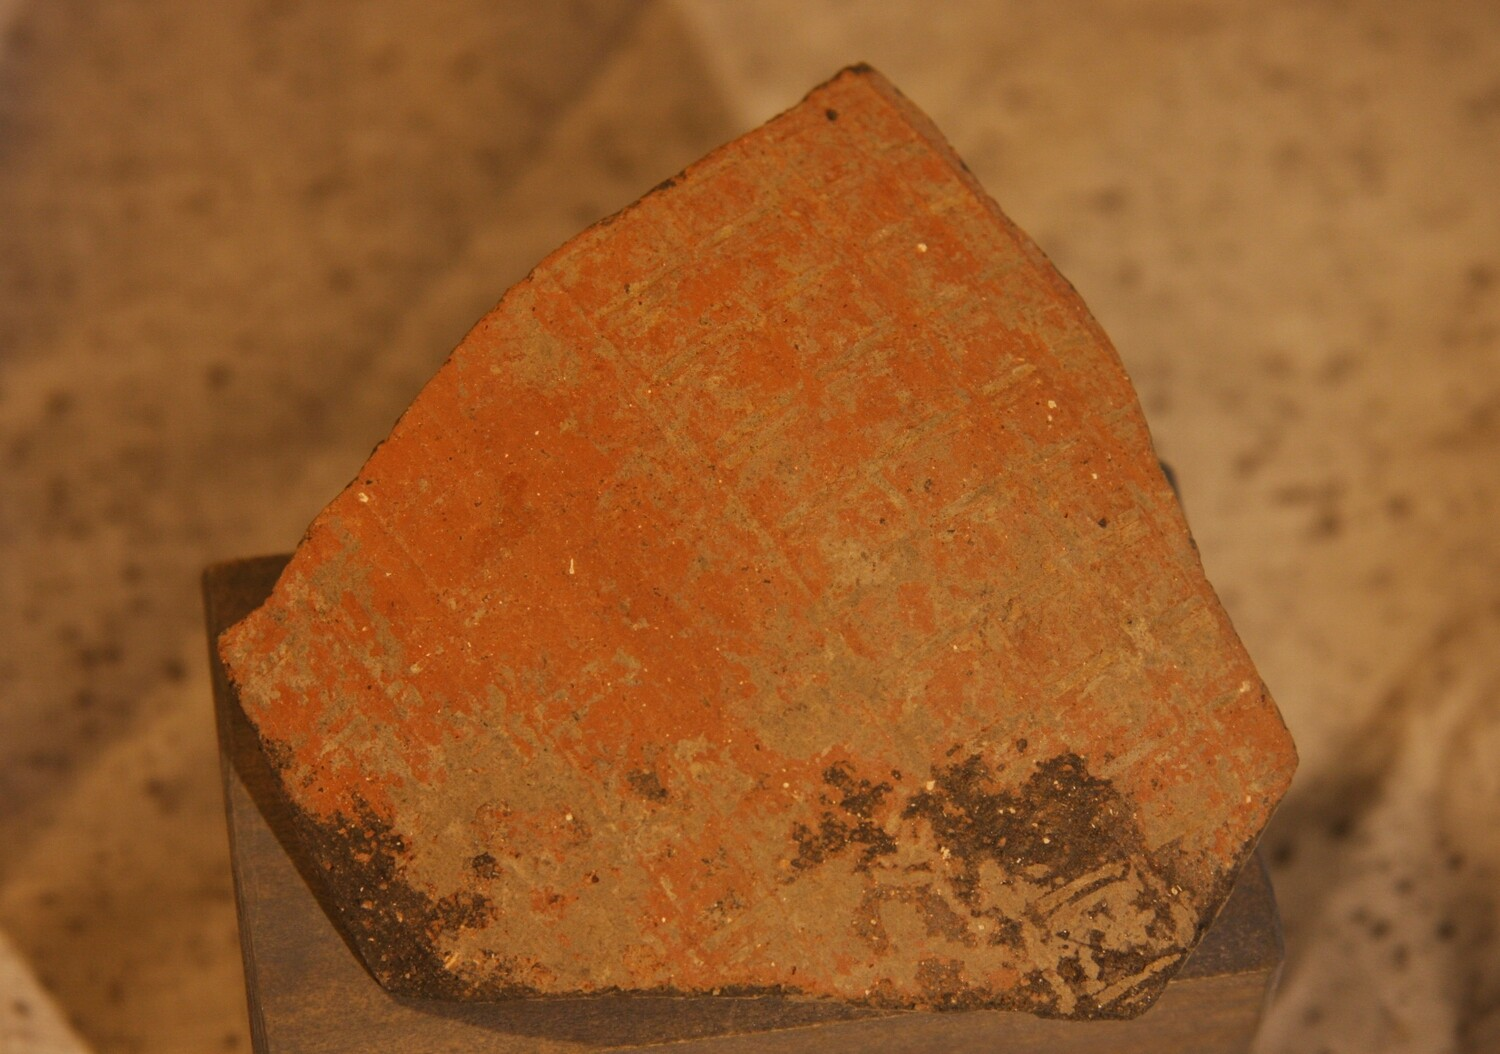 JUST ADDED ON 1/15 - ANCIENT ROMAN EMPIRE / ARCHAEOLOGICAL DIG NEAR TOWCESTER, ENGLAND - A Fragment of Roman Pottery with Design - from an Archaeologist's Collection